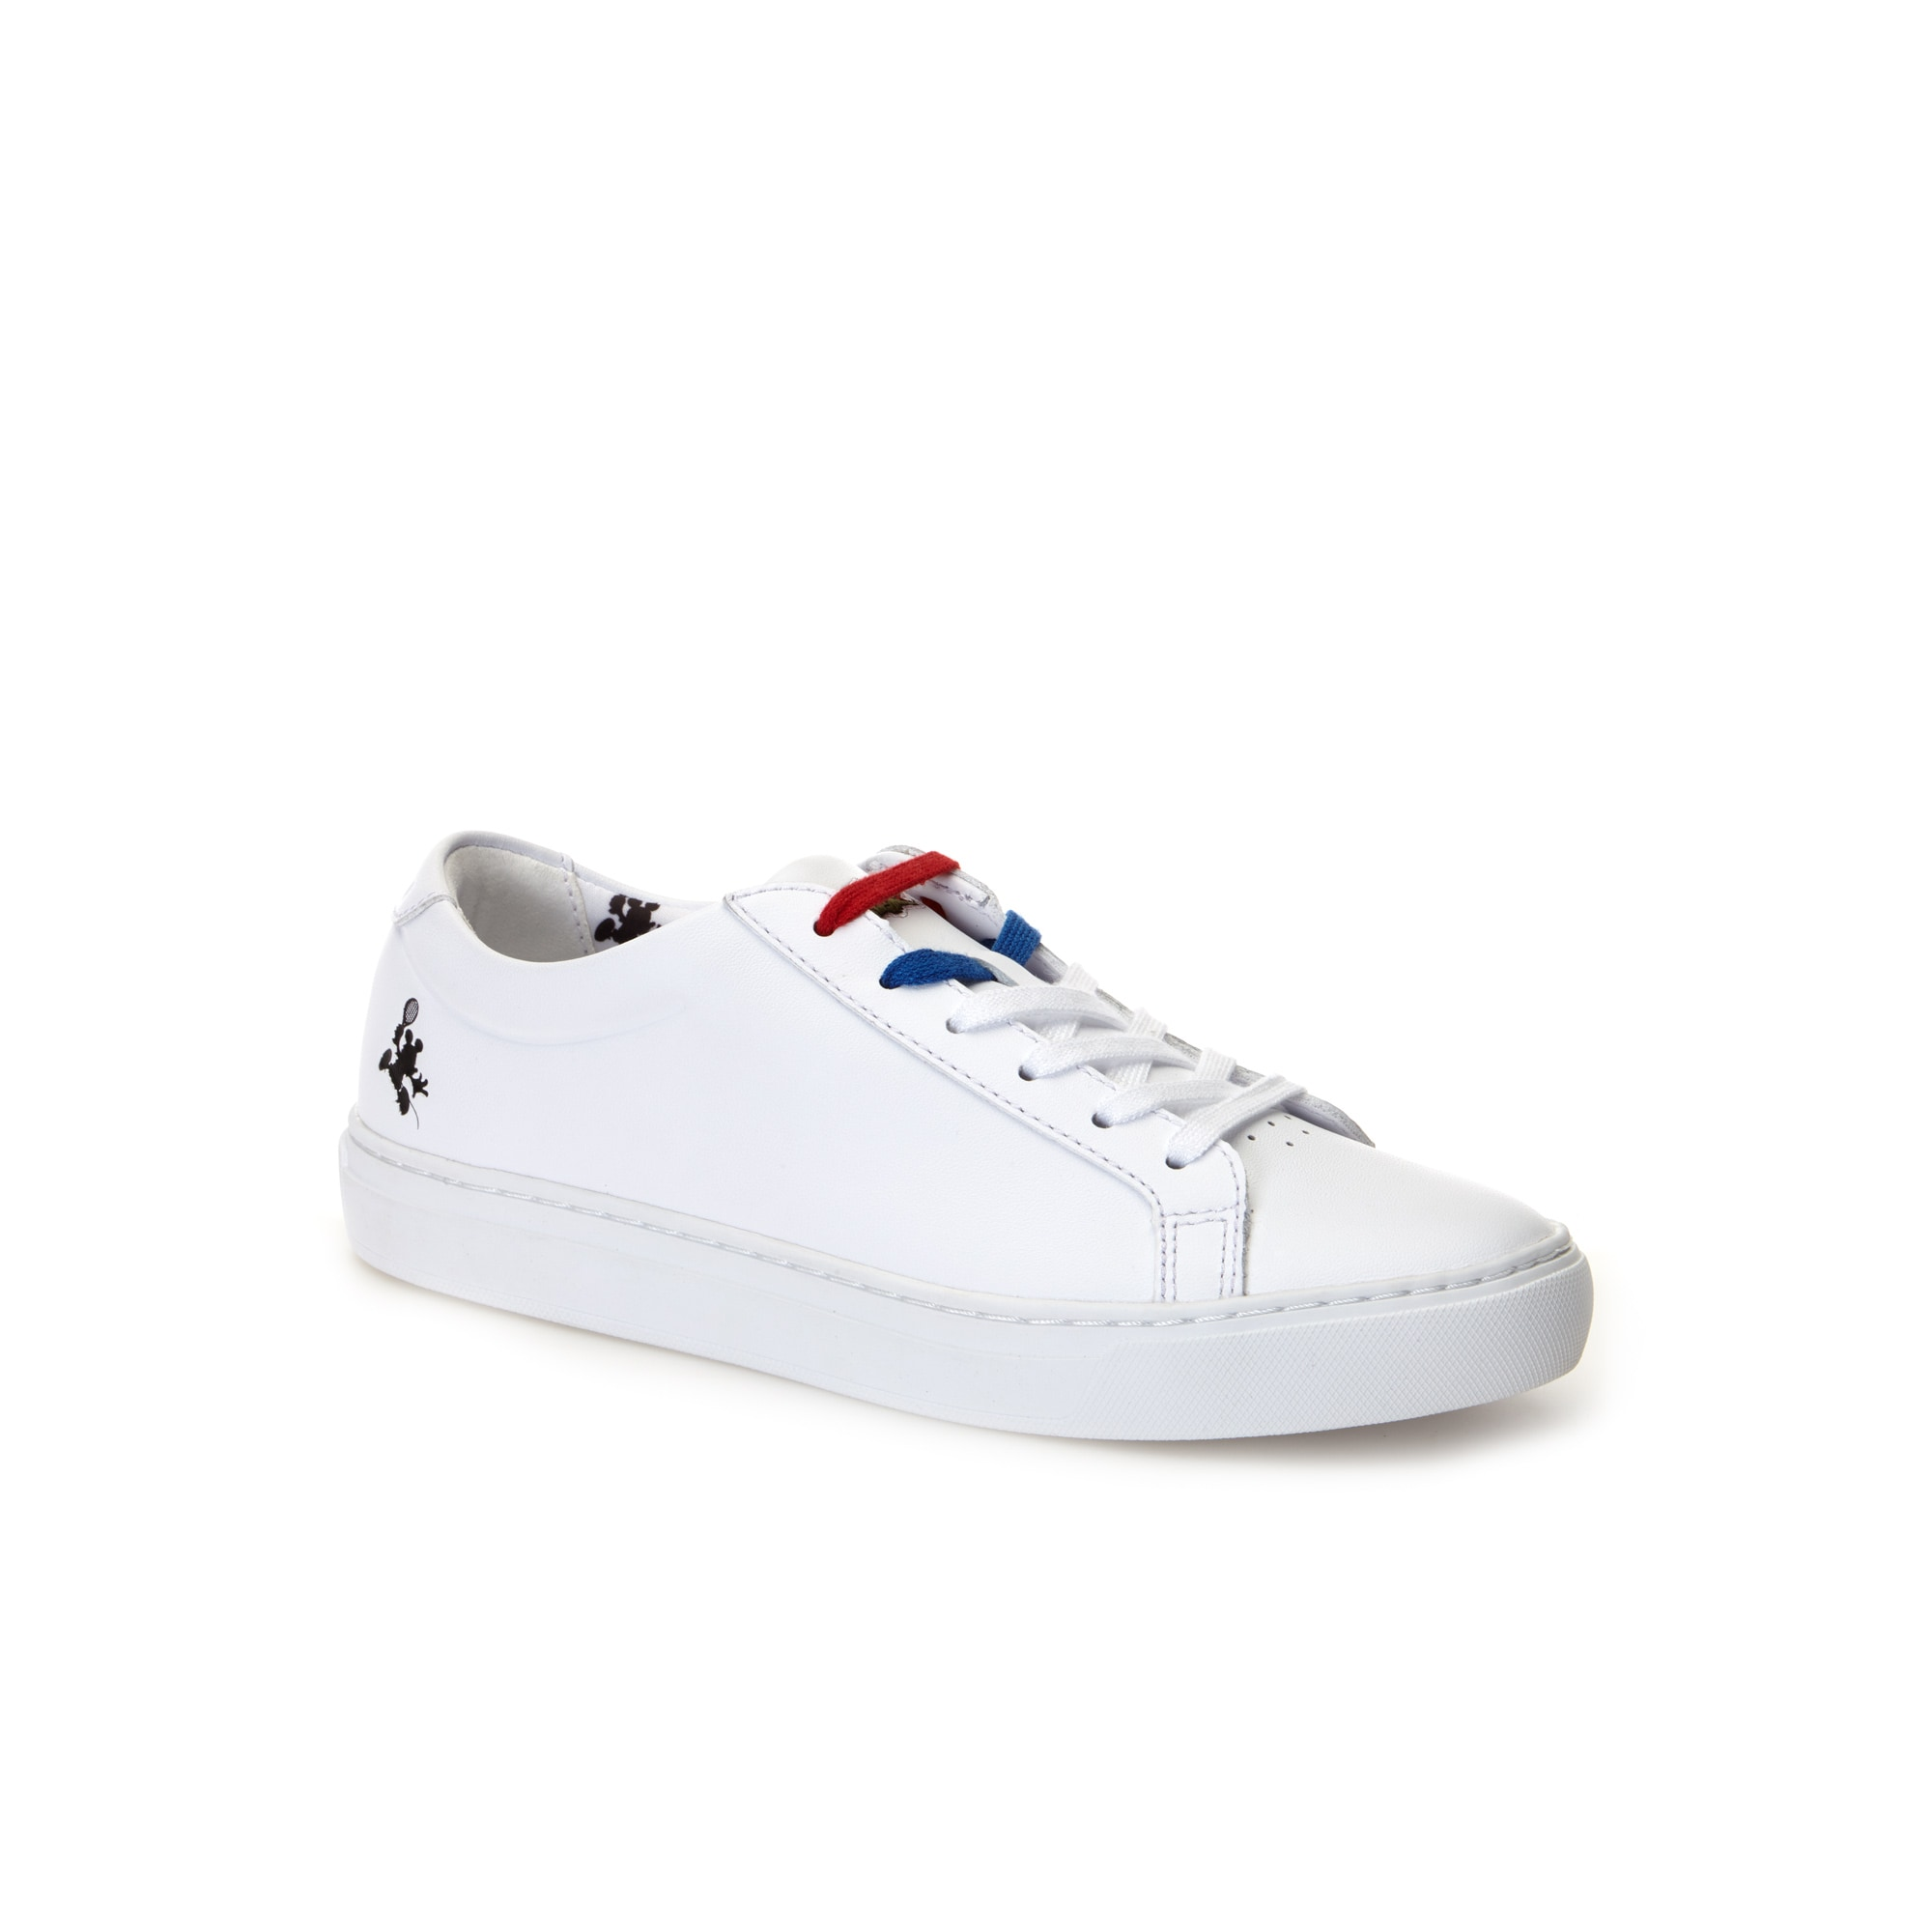 Women's L.12.12 Lacoste Disney Sneakers